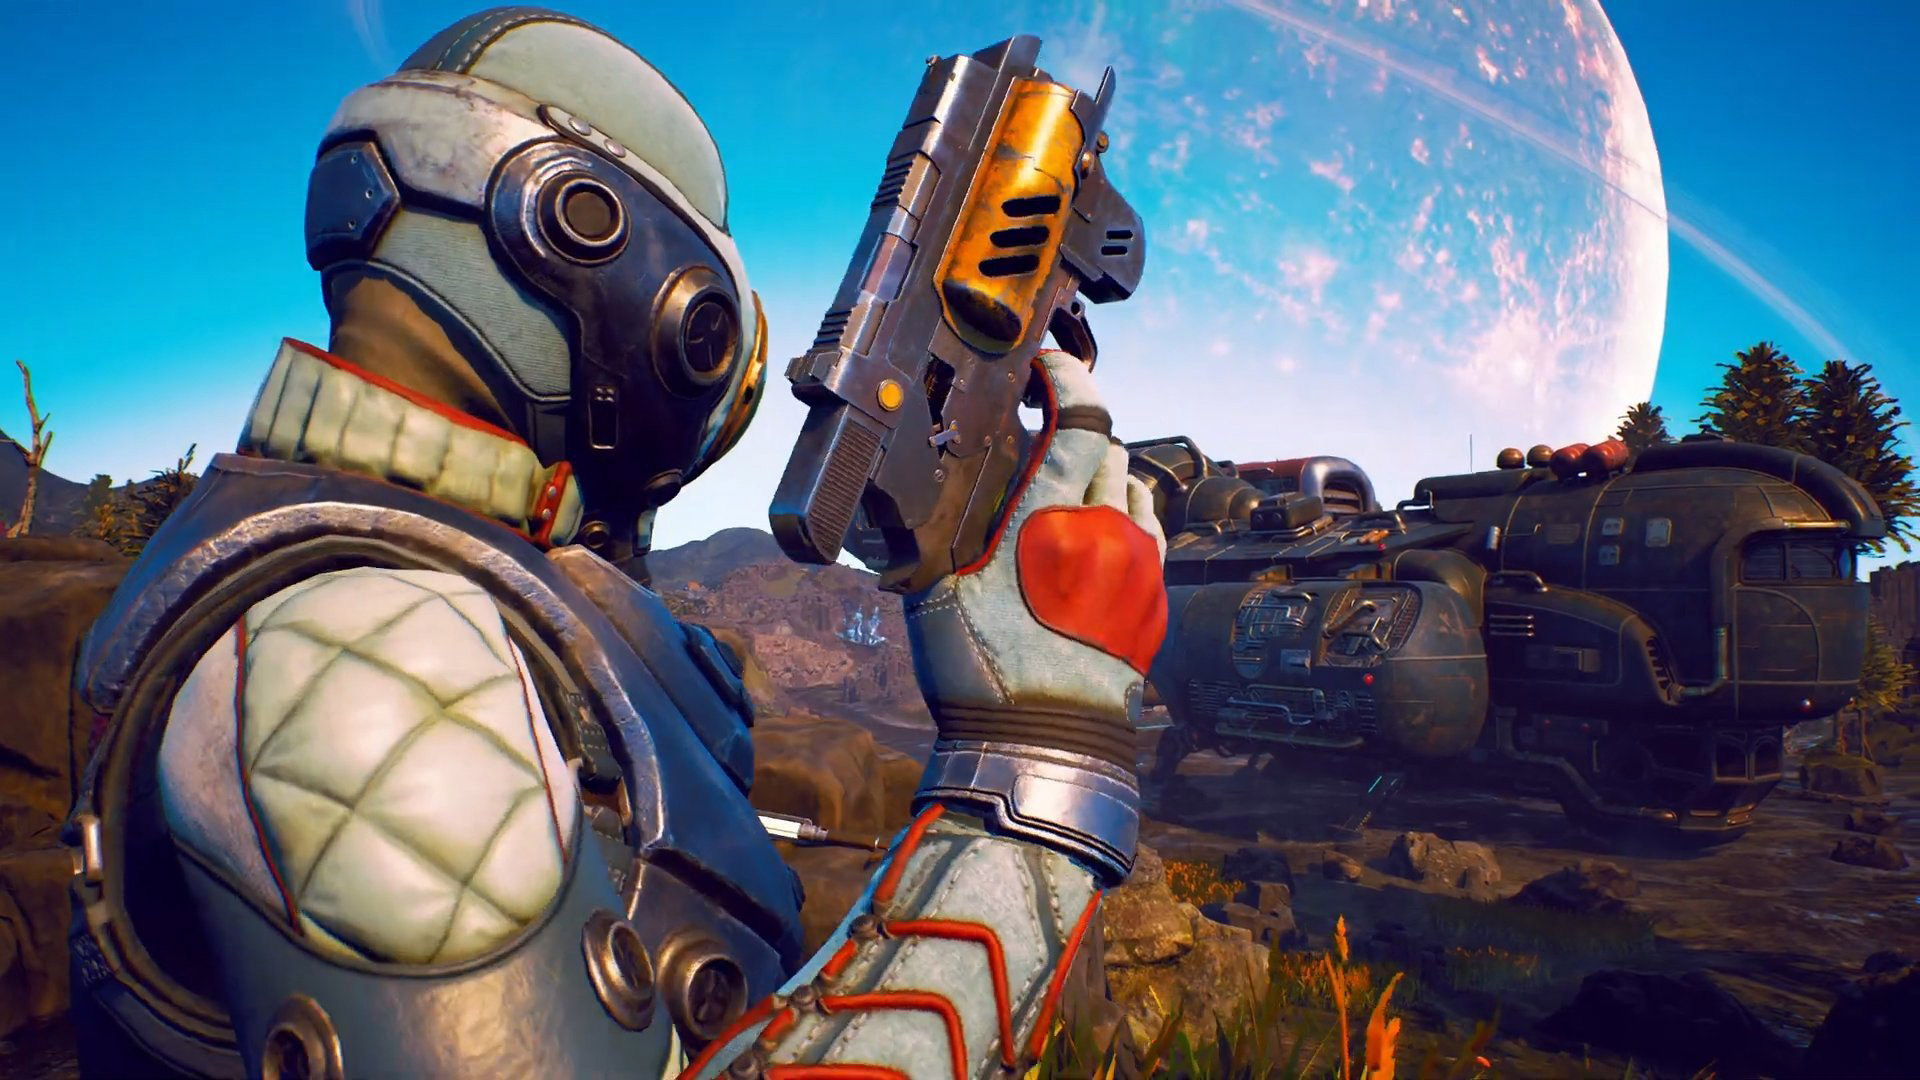 Free The Outer Worlds Wallpaper in 1920x1080